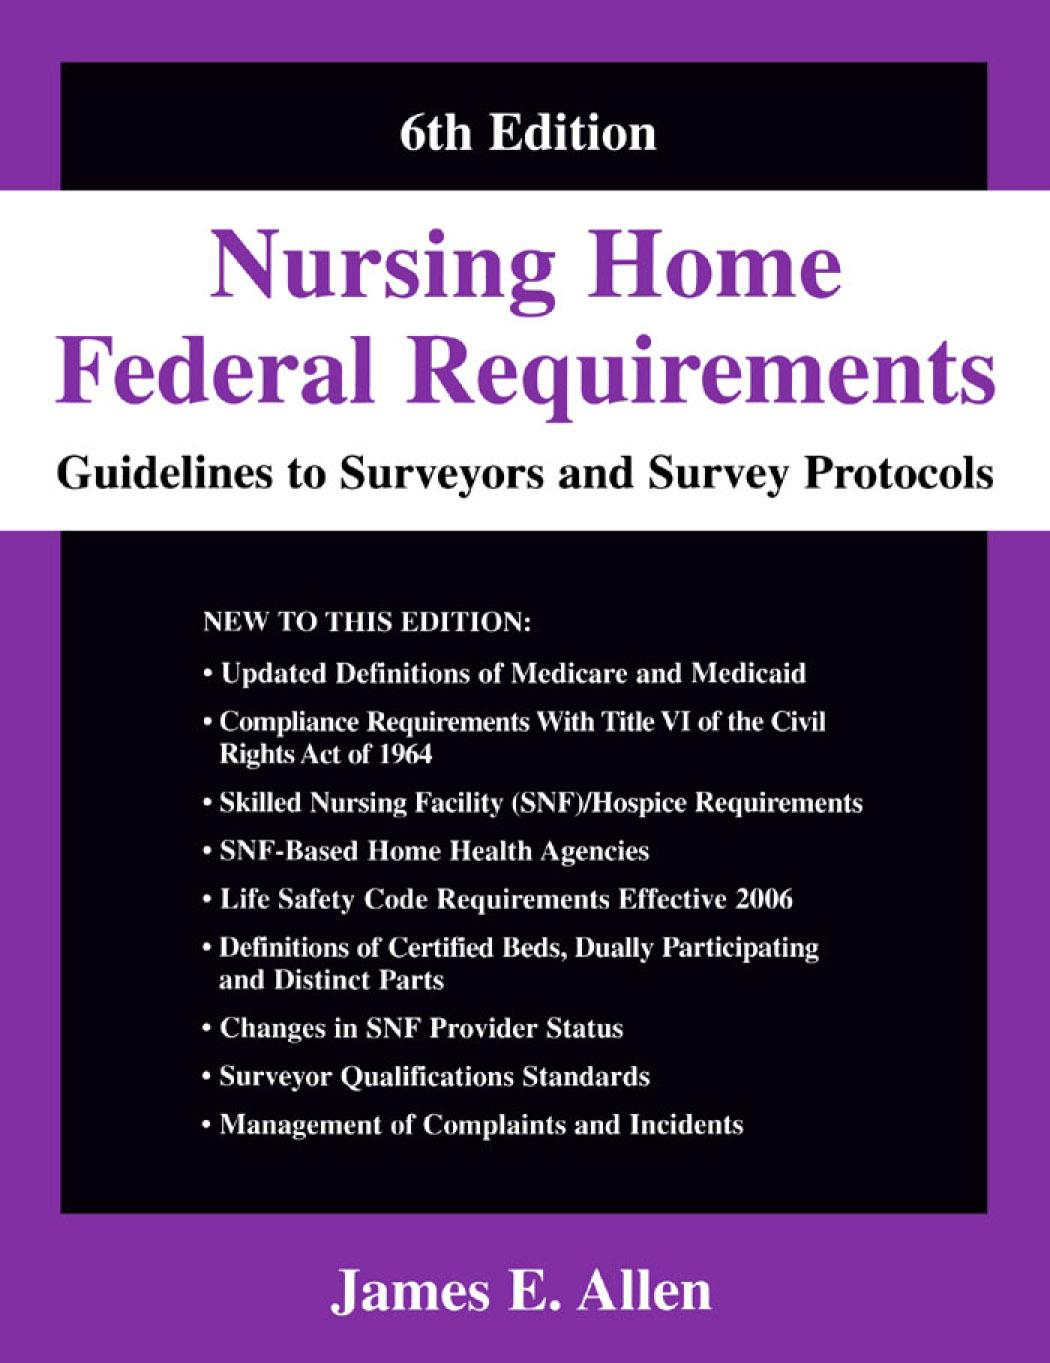 Nursing Homes Federal Requirements: Guide lines To Surveyors and Survey Protocols EB9780826104922